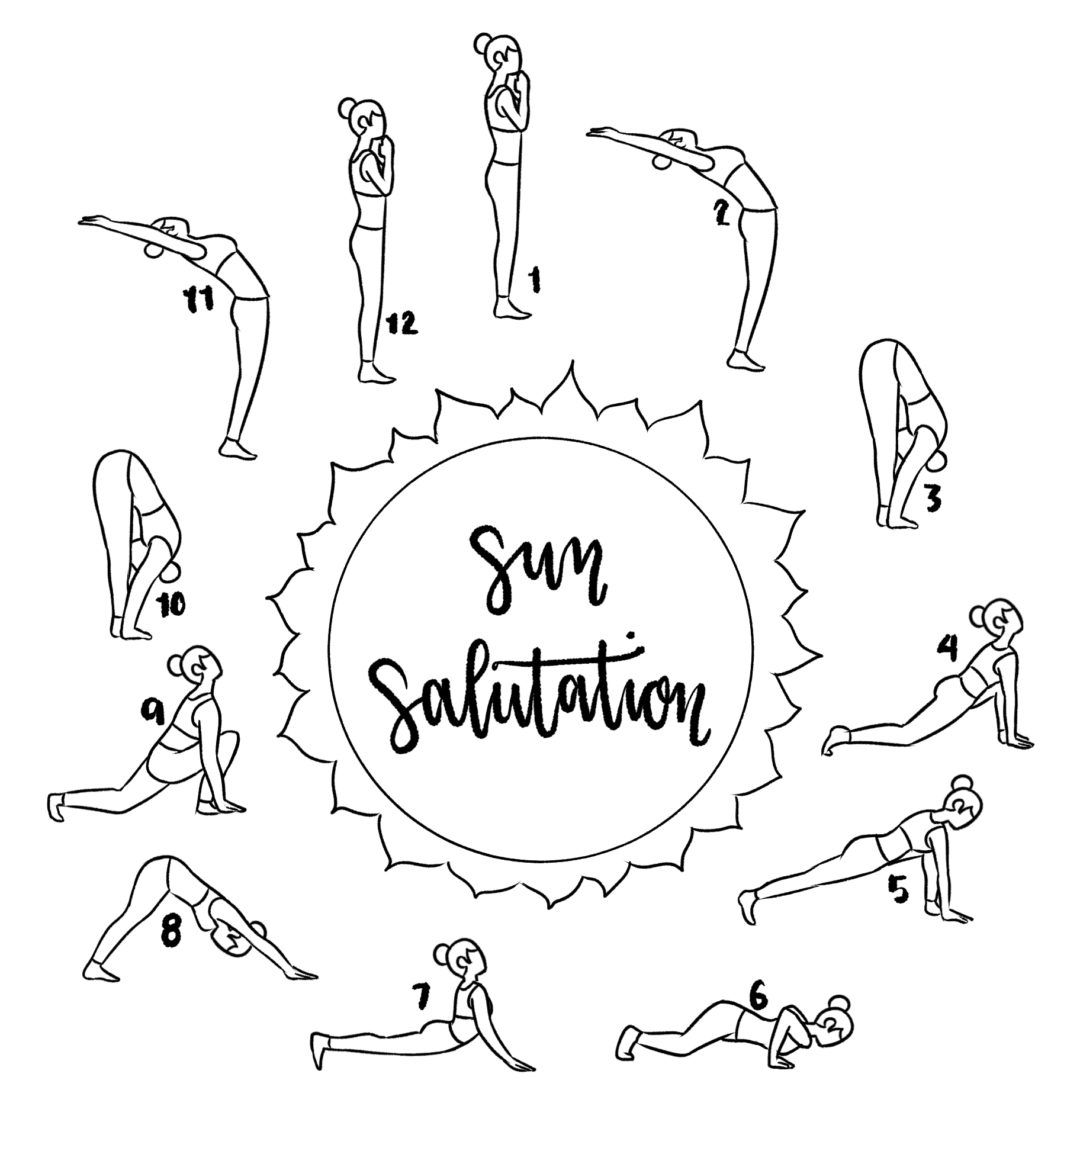 12 Steps to Perfect Sun Salutations - Wholesome In